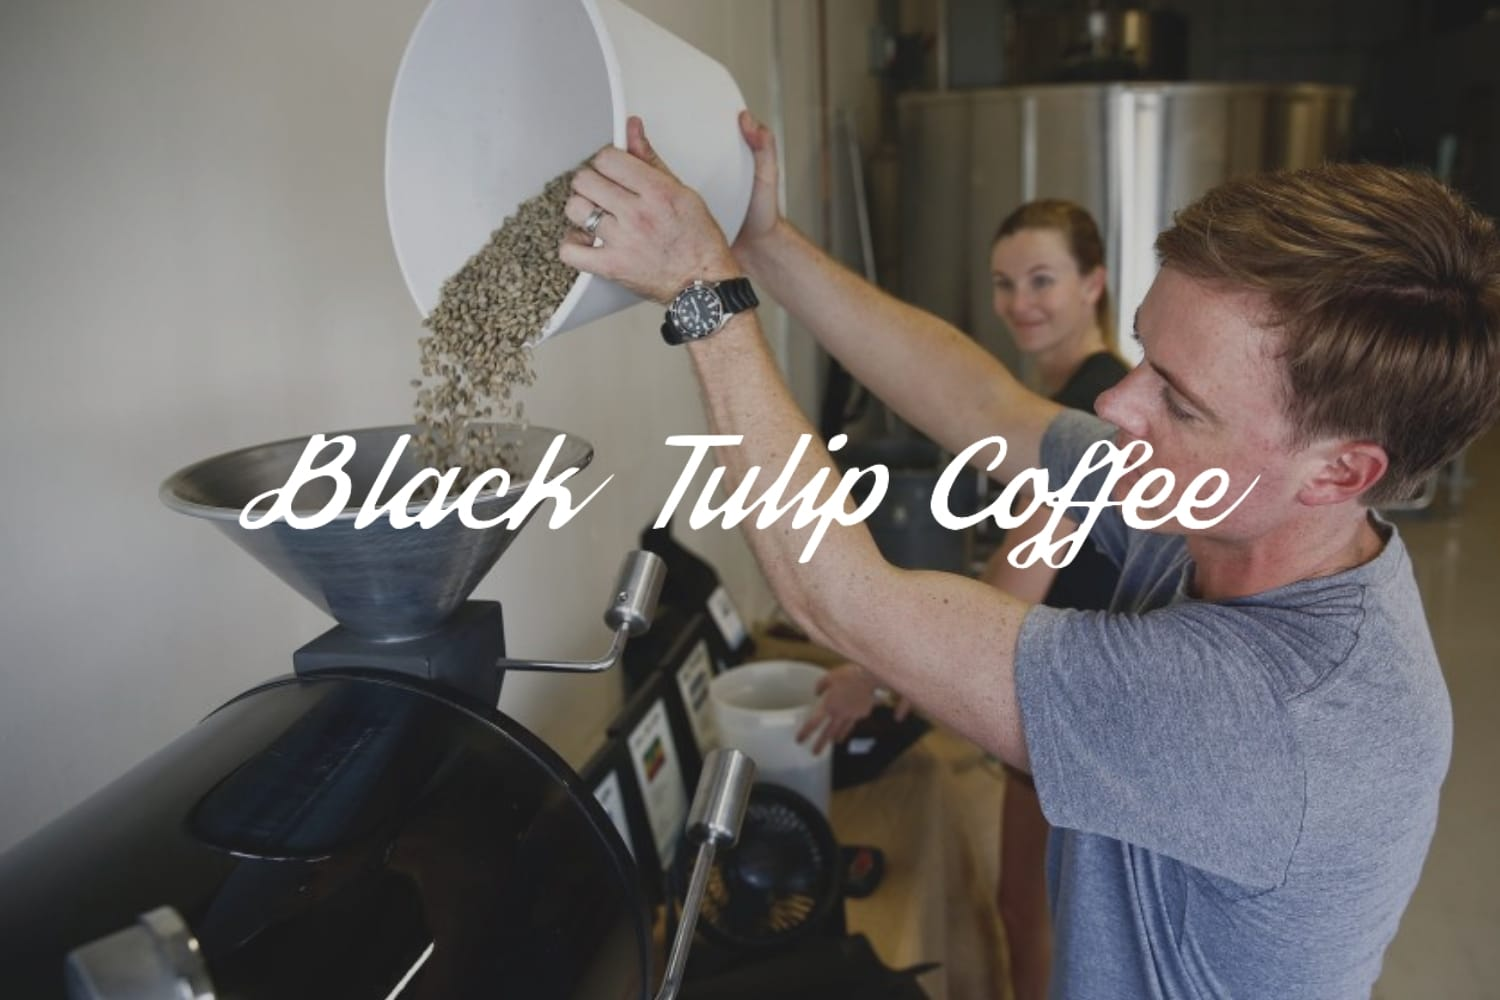 black-tulip-coffee-roasters-at-kunjani-naples.jpg